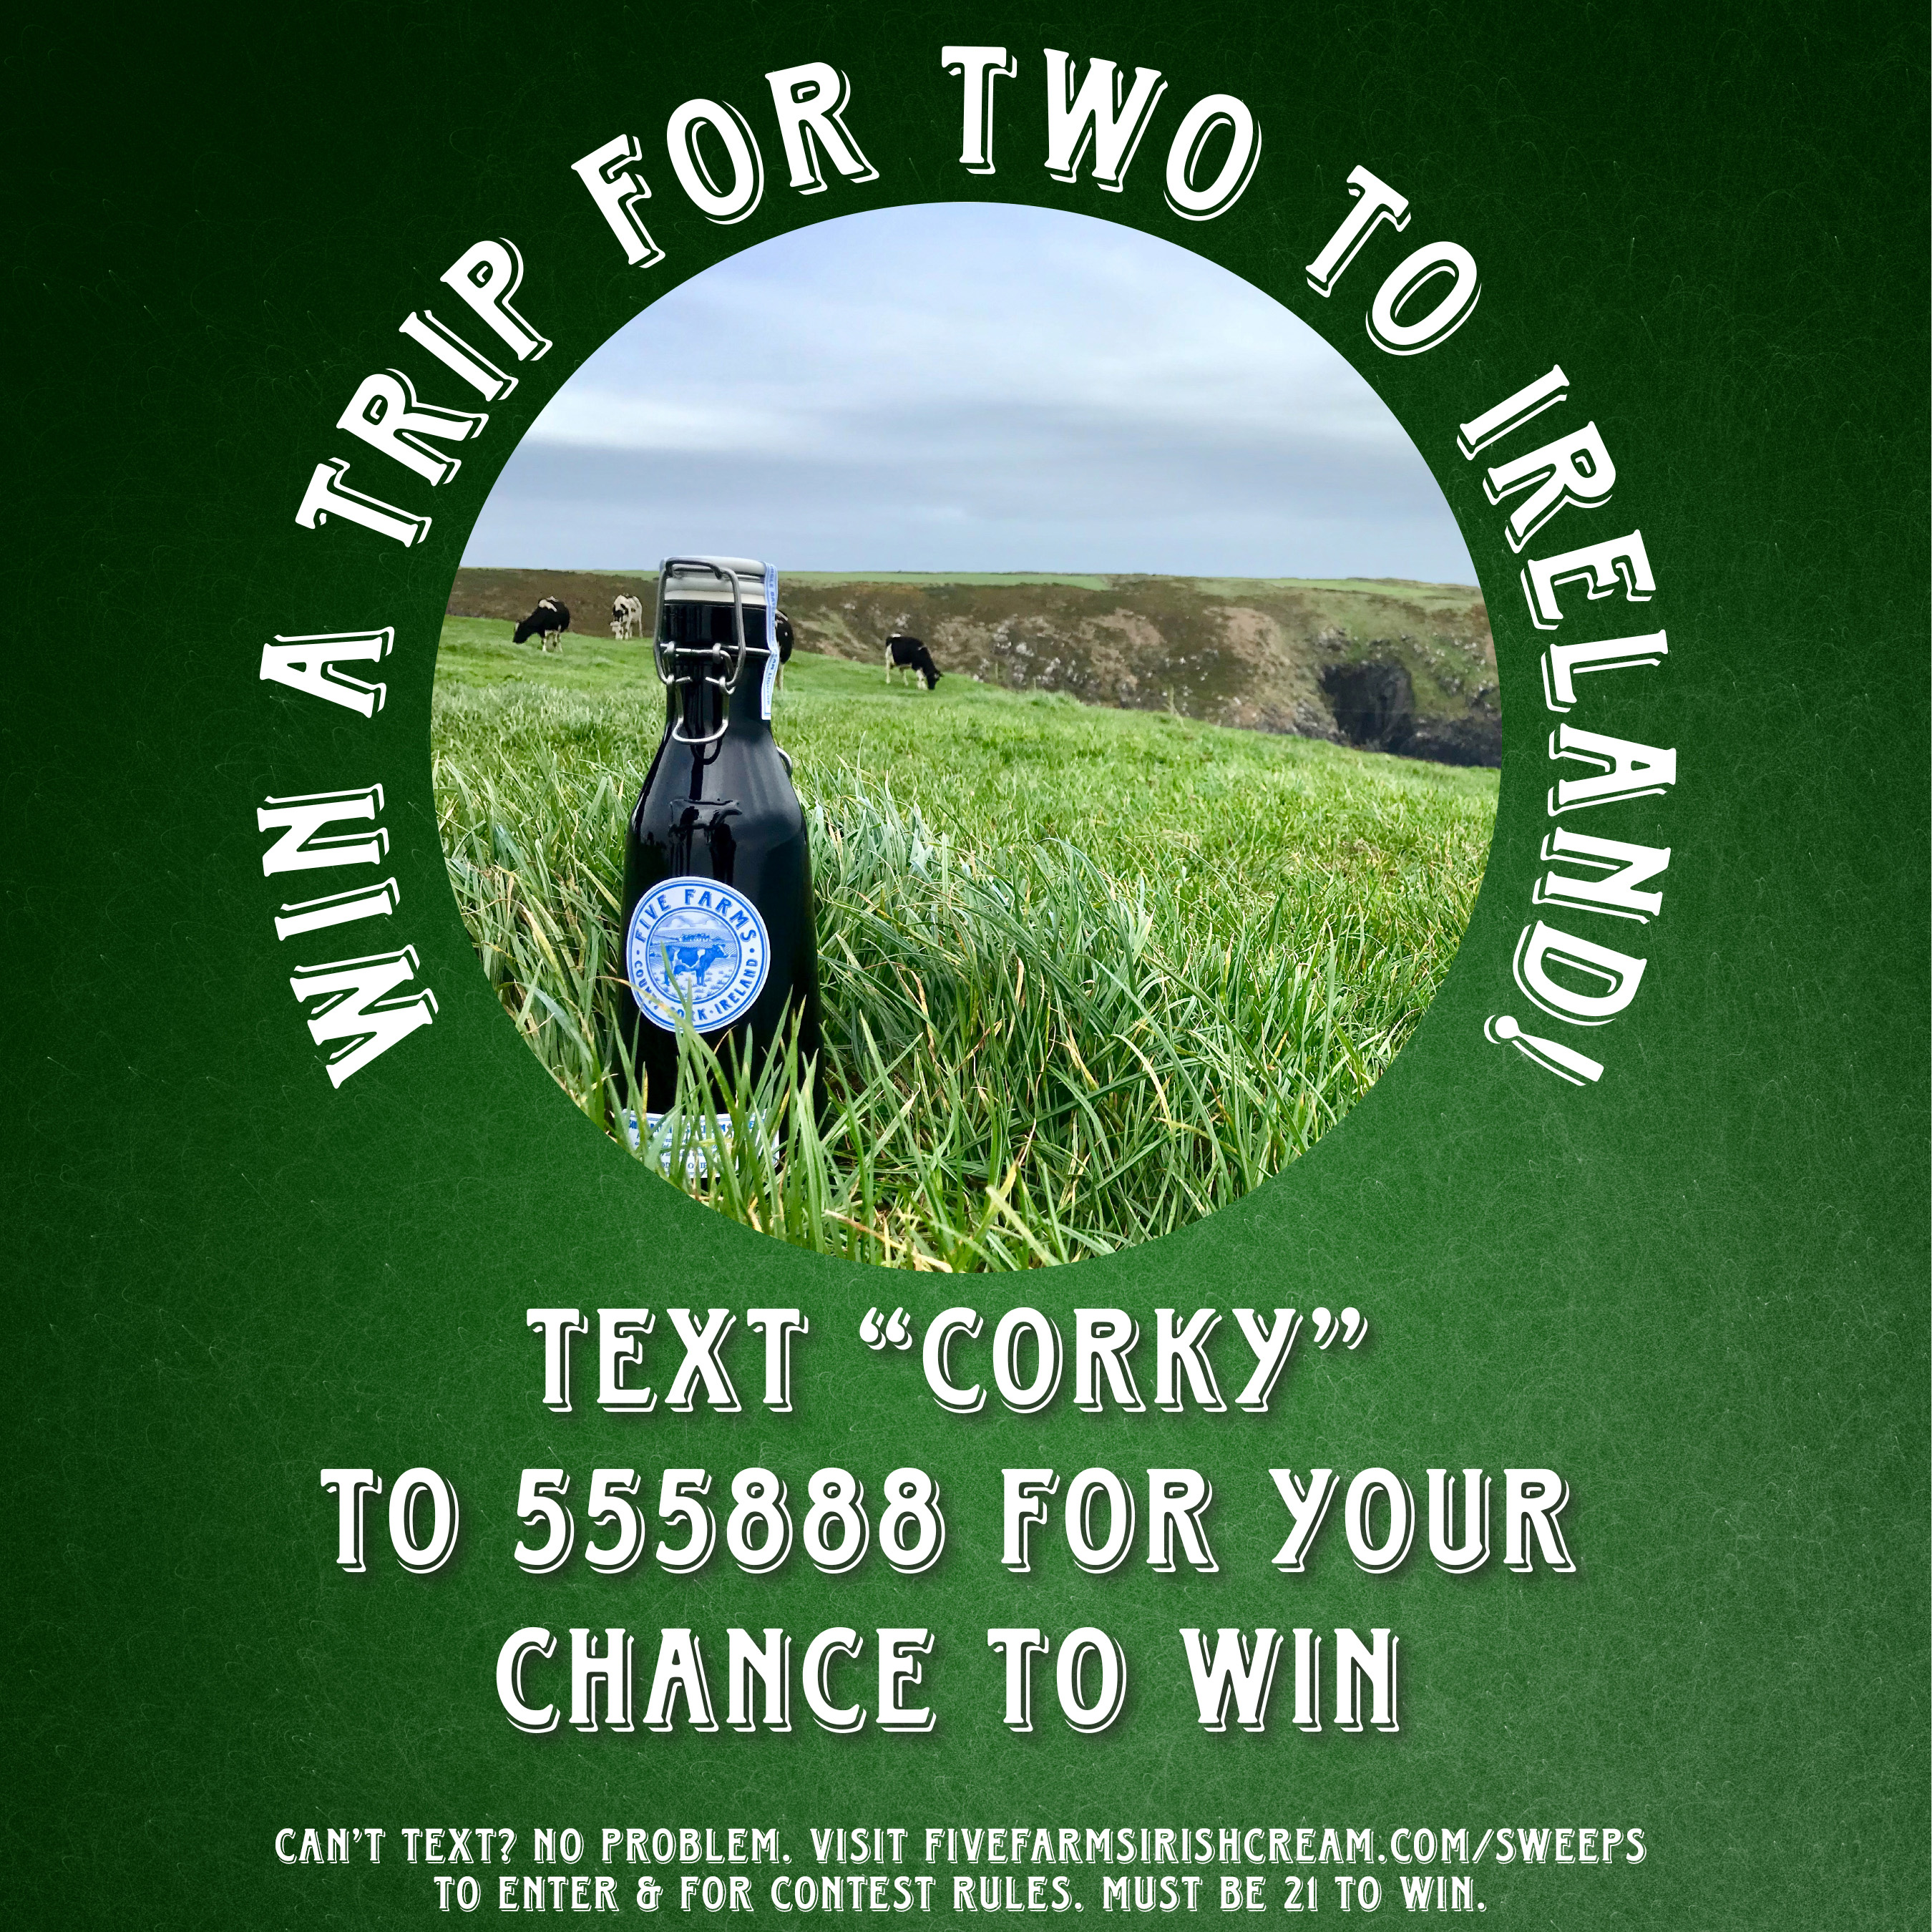 Win a trip to County Cork, Ireland!